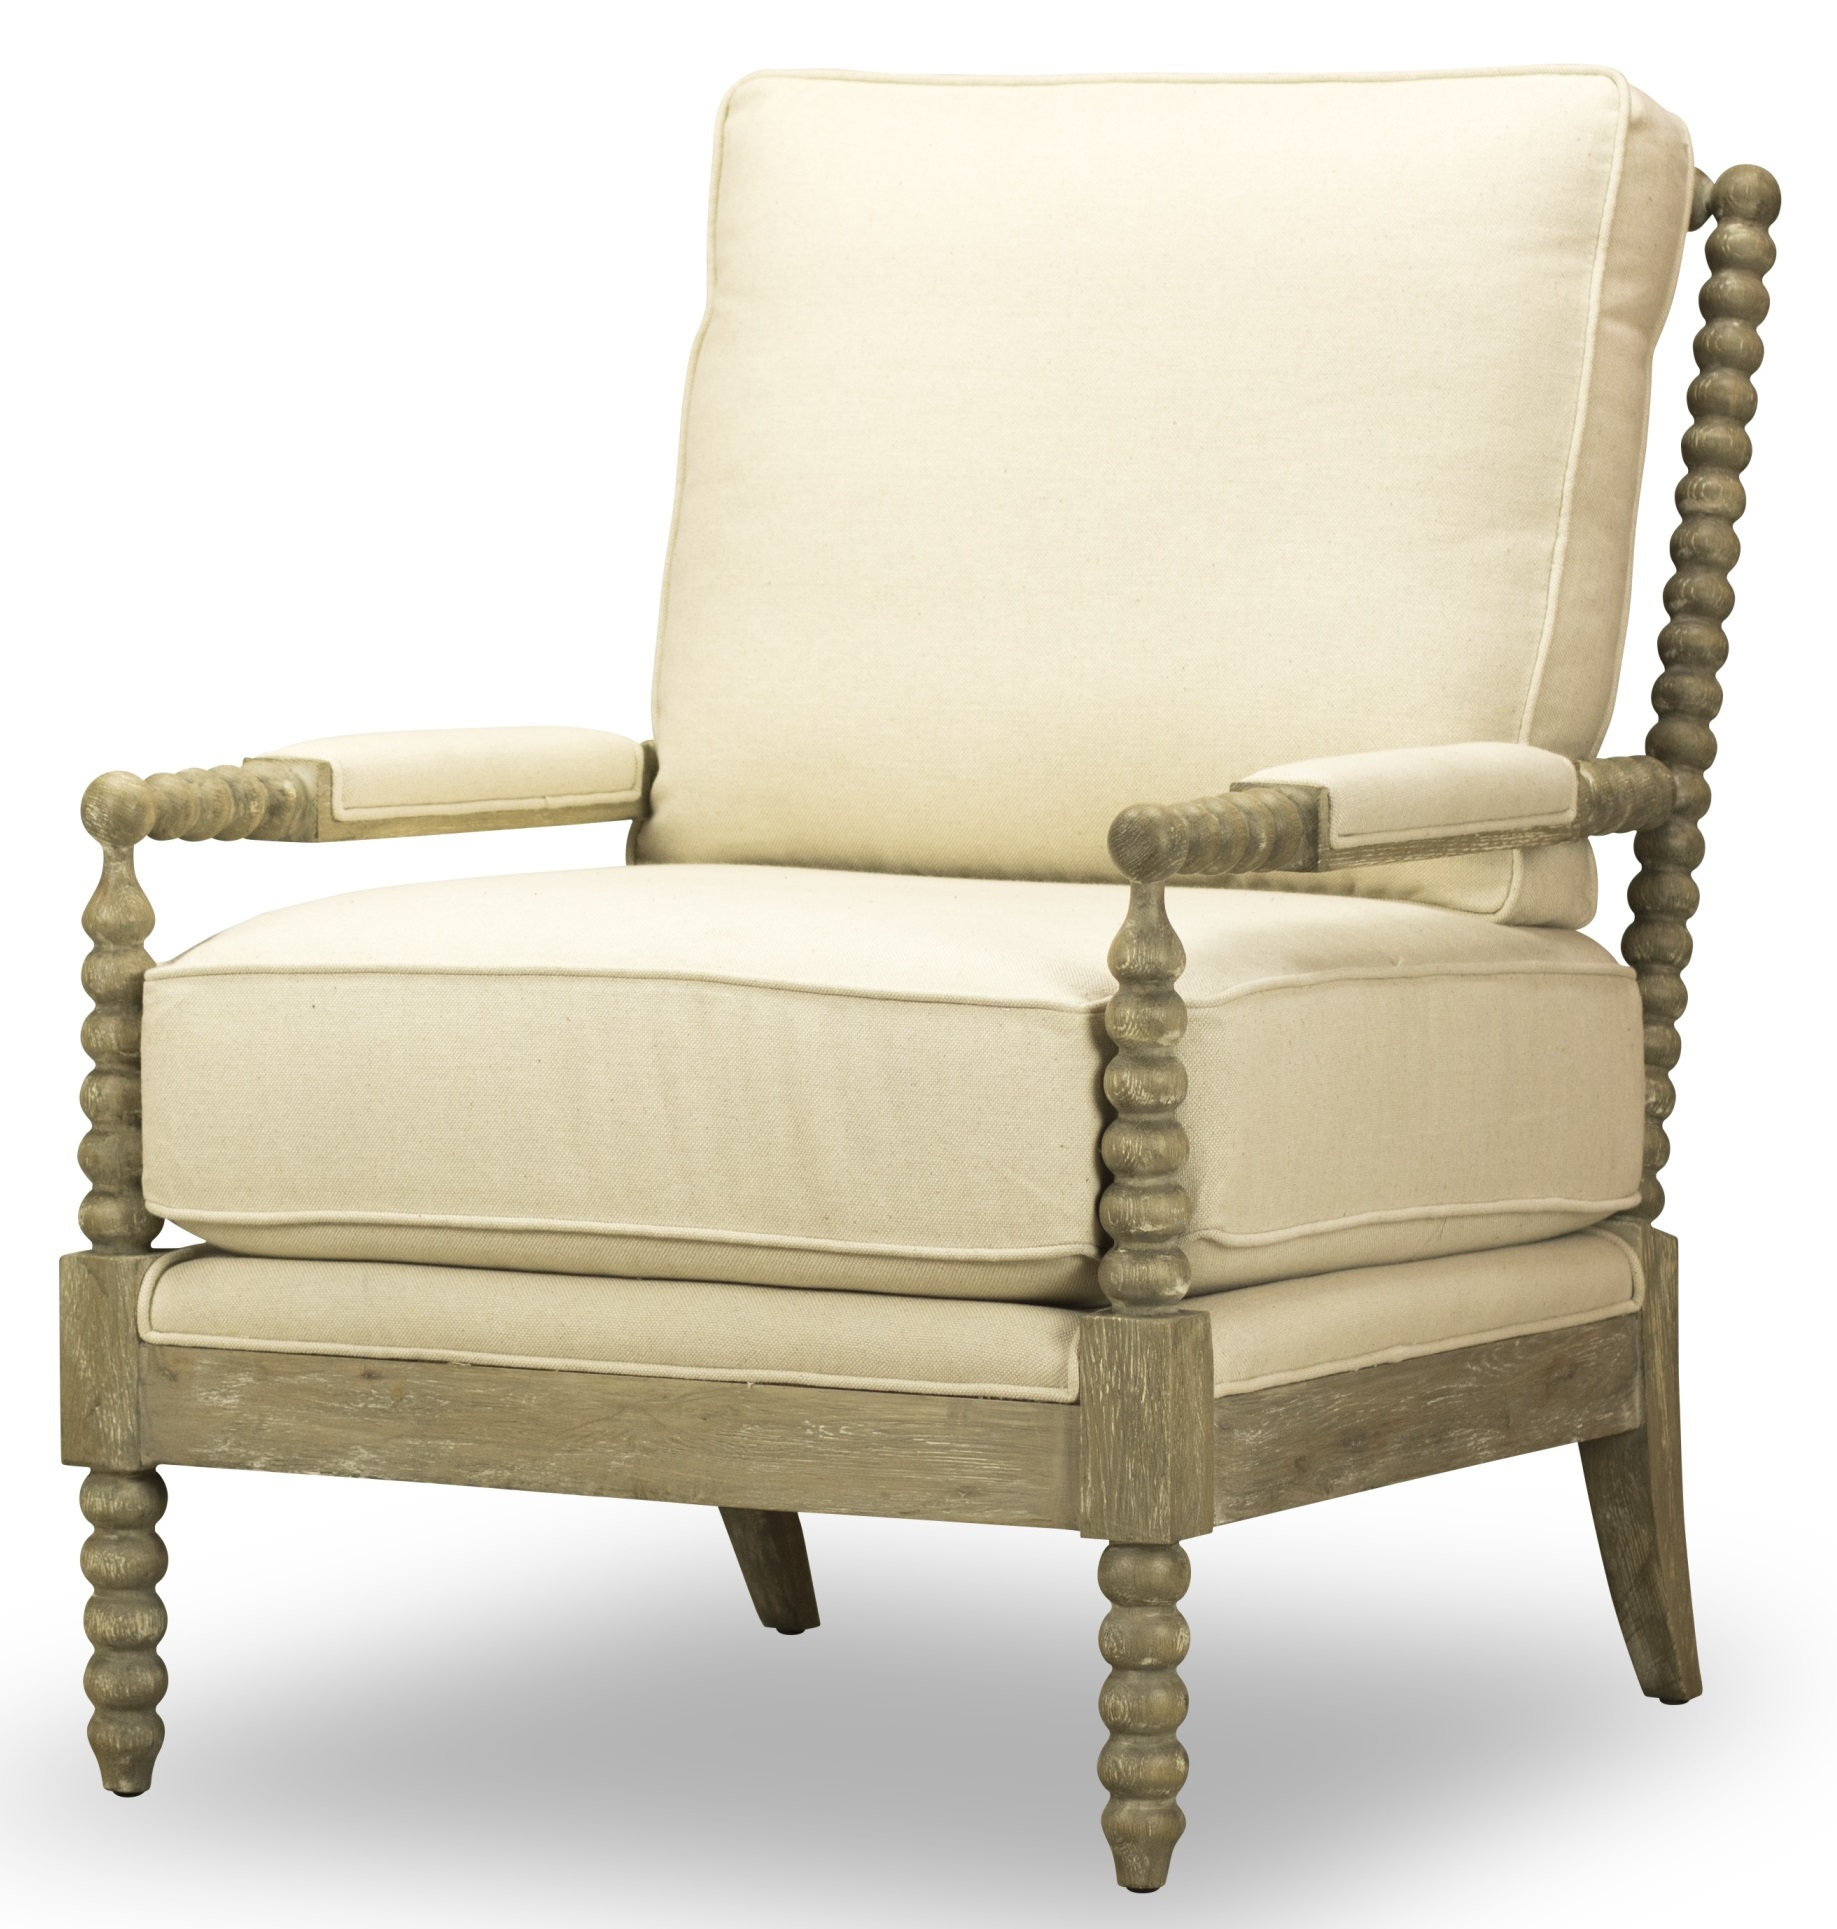 Pleasant Marche Accent Chair Linen By Spectra Home Cm1012 A Short Links Chair Design For Home Short Linksinfo